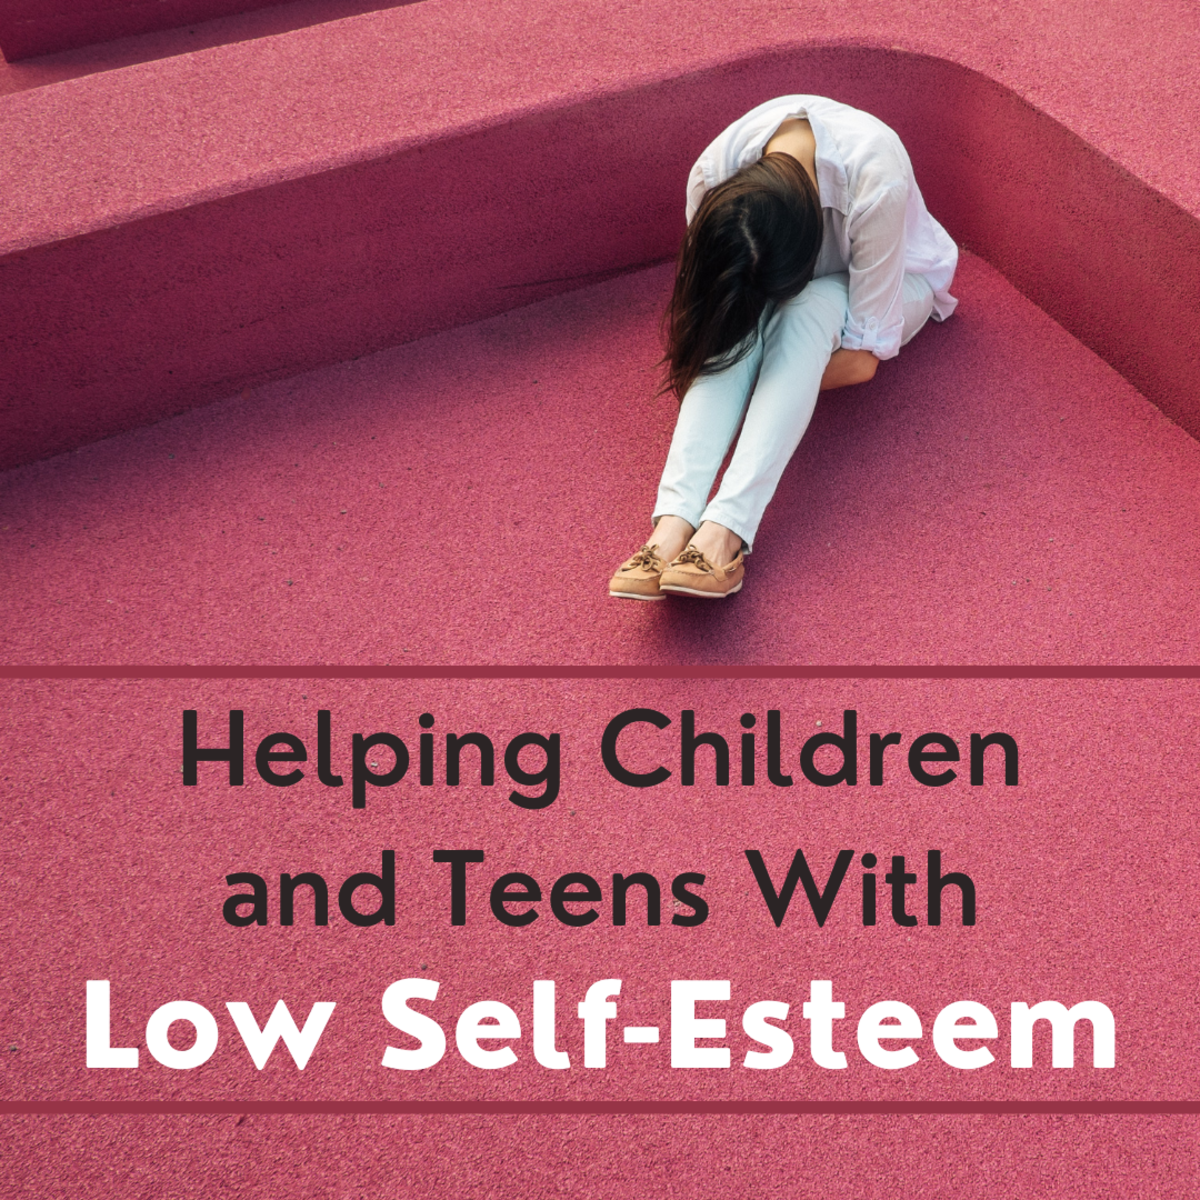 How Can Parents and Teachers Help Kids With Low Self-Esteem?